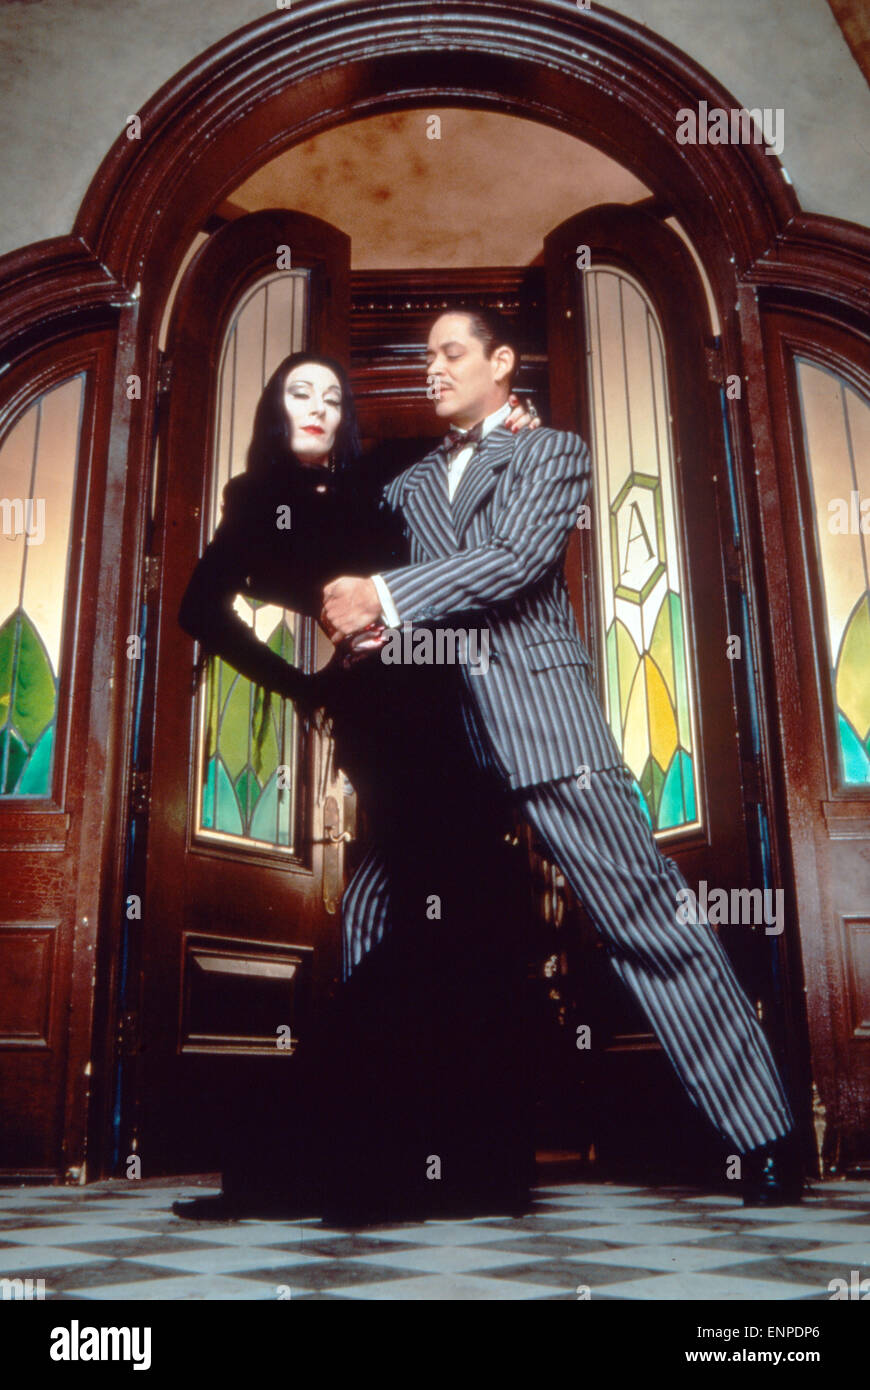 the addams family 1991 stock photos the addams family 1991 stock images alamy. Black Bedroom Furniture Sets. Home Design Ideas